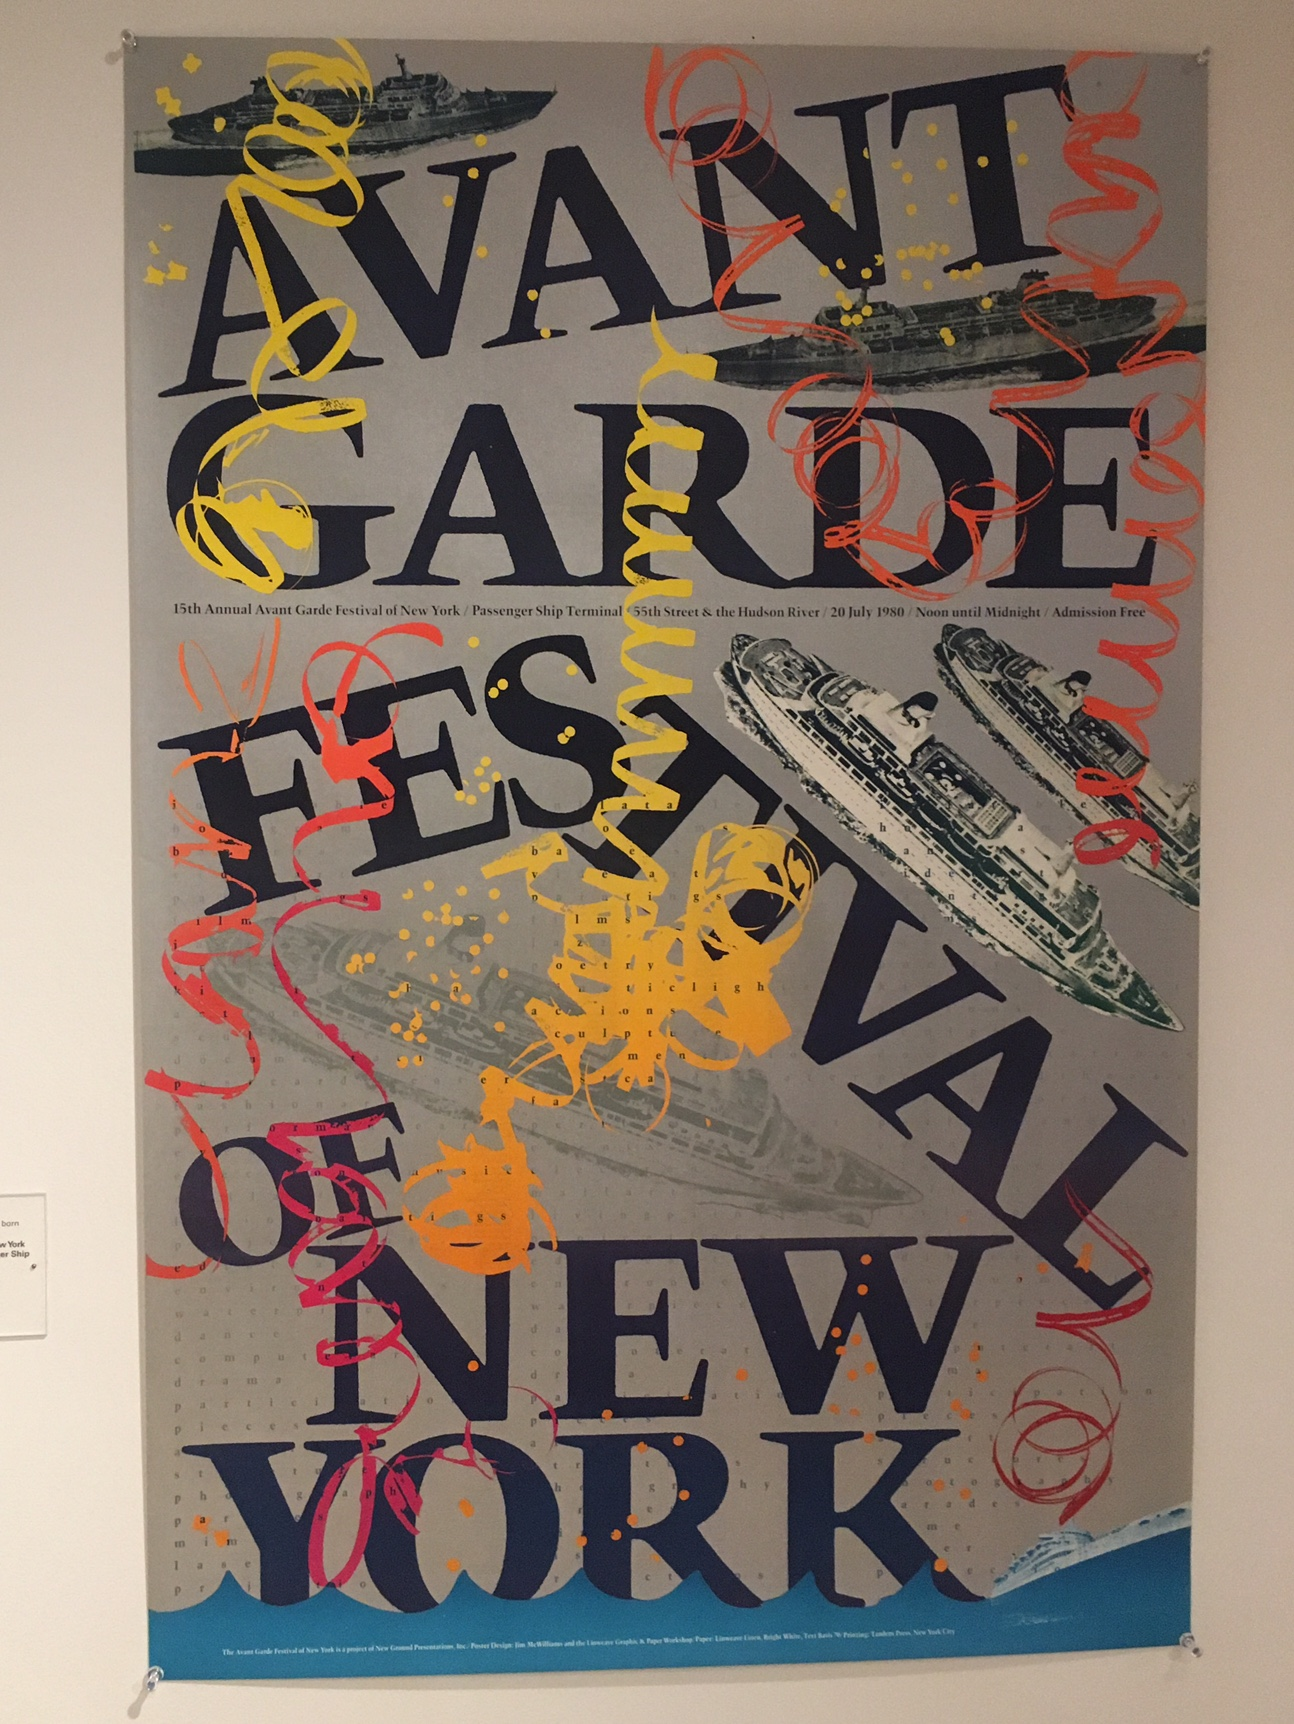 Poster for the 15th Annual New York Avant Garde Festival, Passenger Ship Terminal, July 20, 1980, Offset lithograph on paper, Courtesy Barbara Moore.